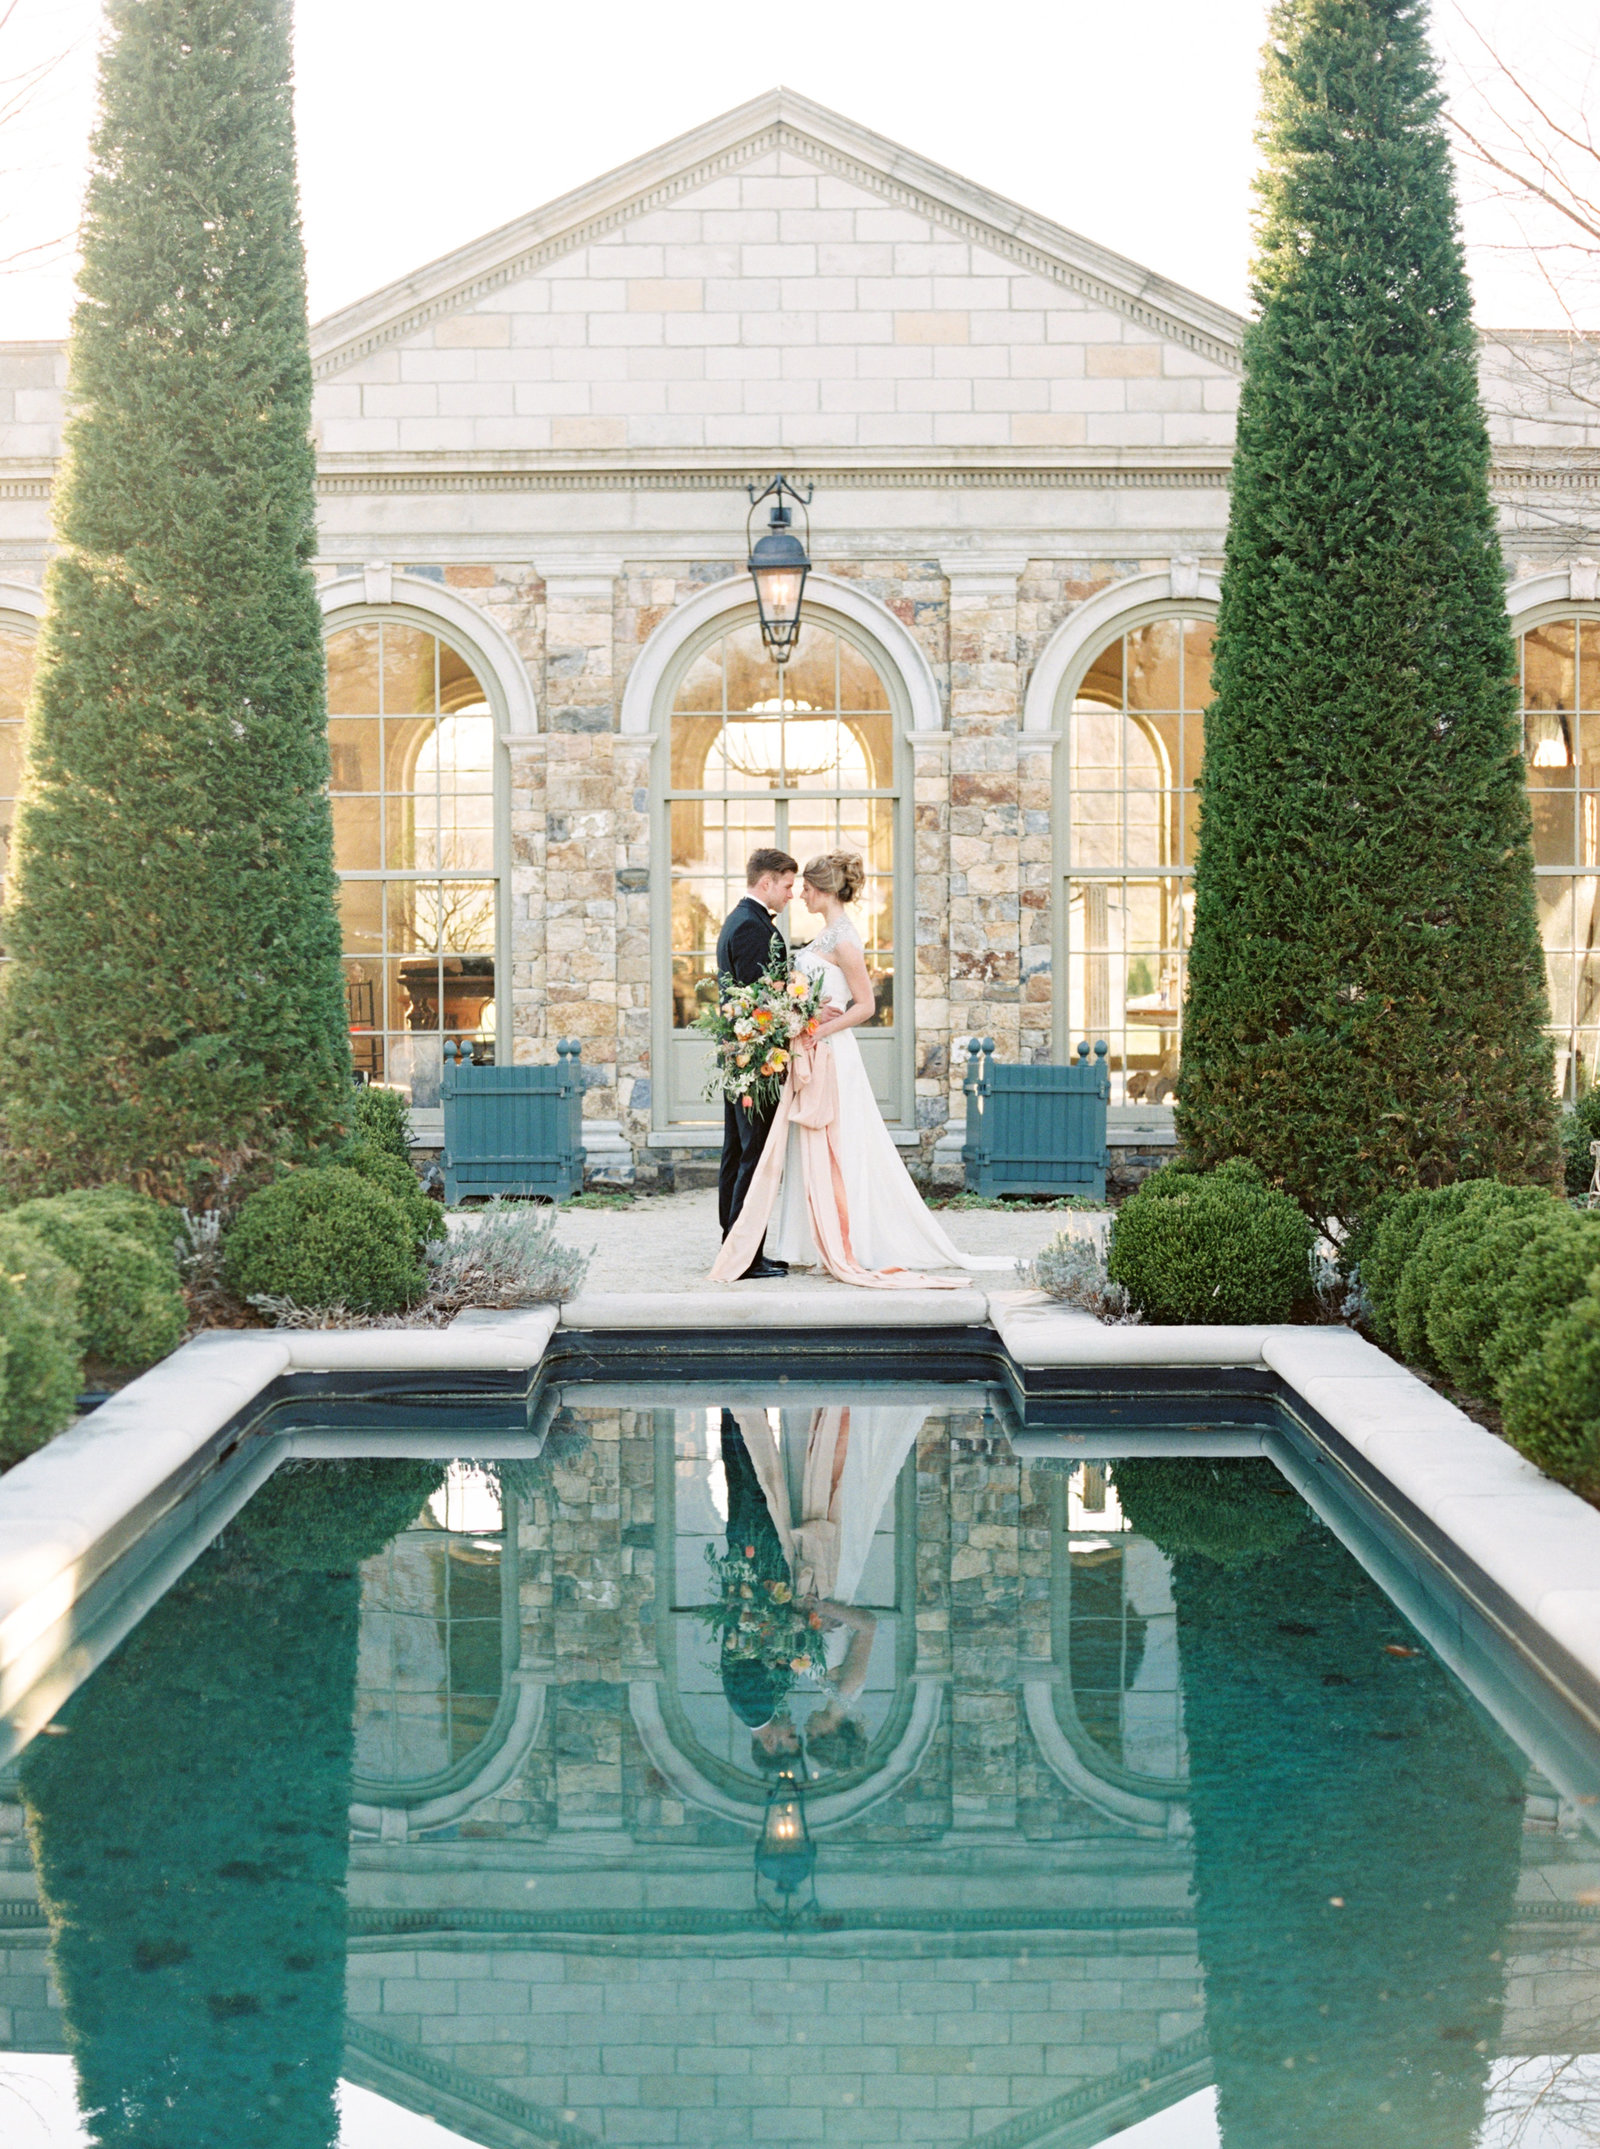 JardinDuBuis-EuropeanGreenhouseWedding-151